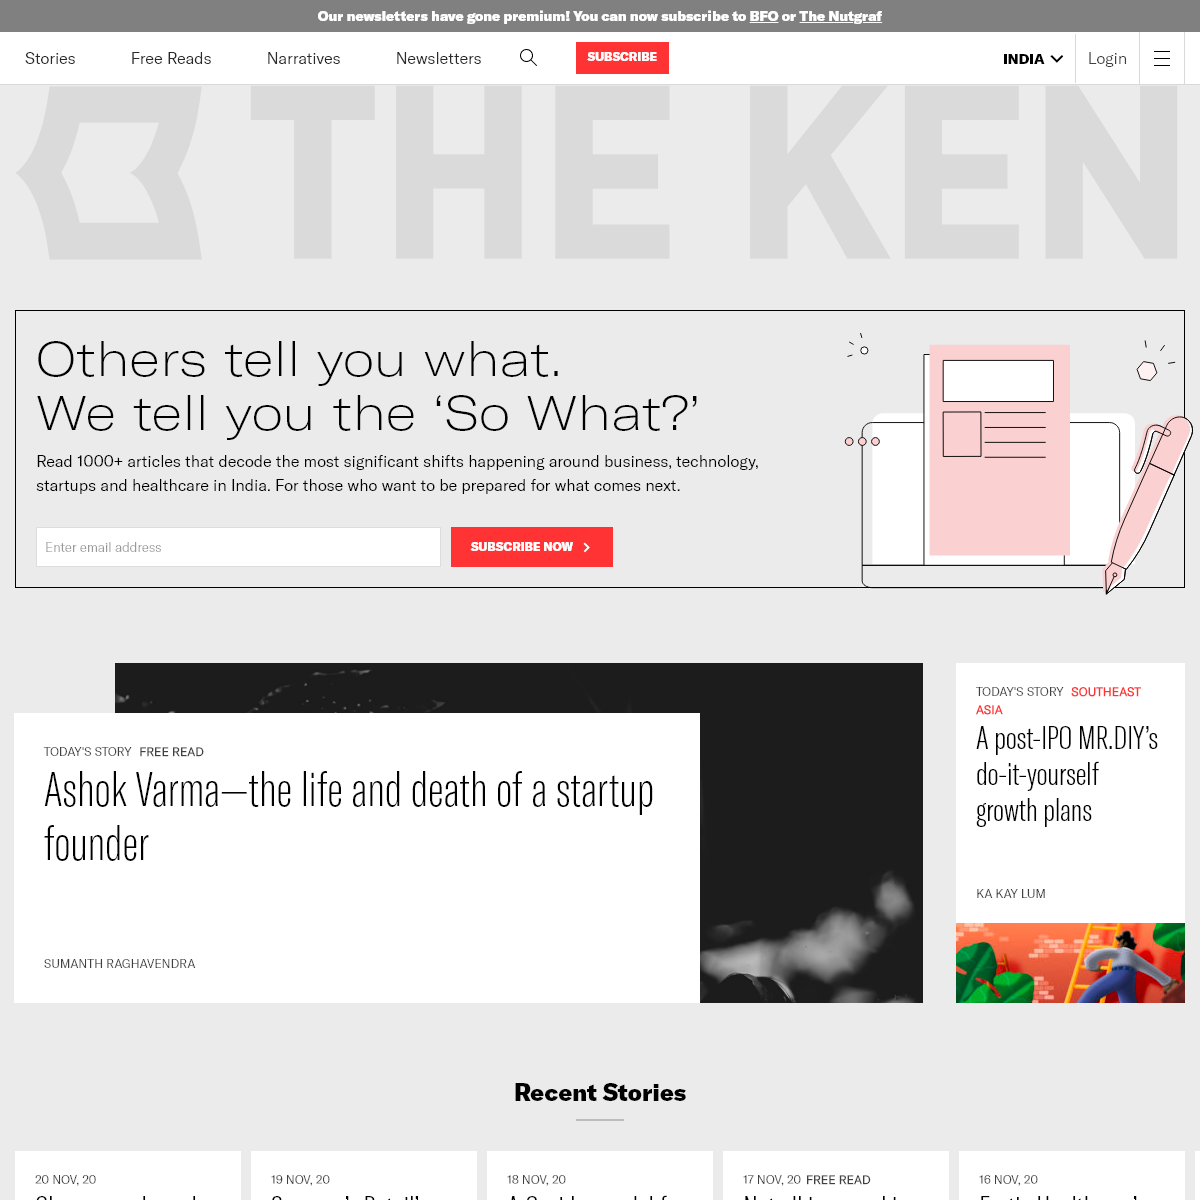 The Ken - Business, Startups, Technology and Healthcare news from India